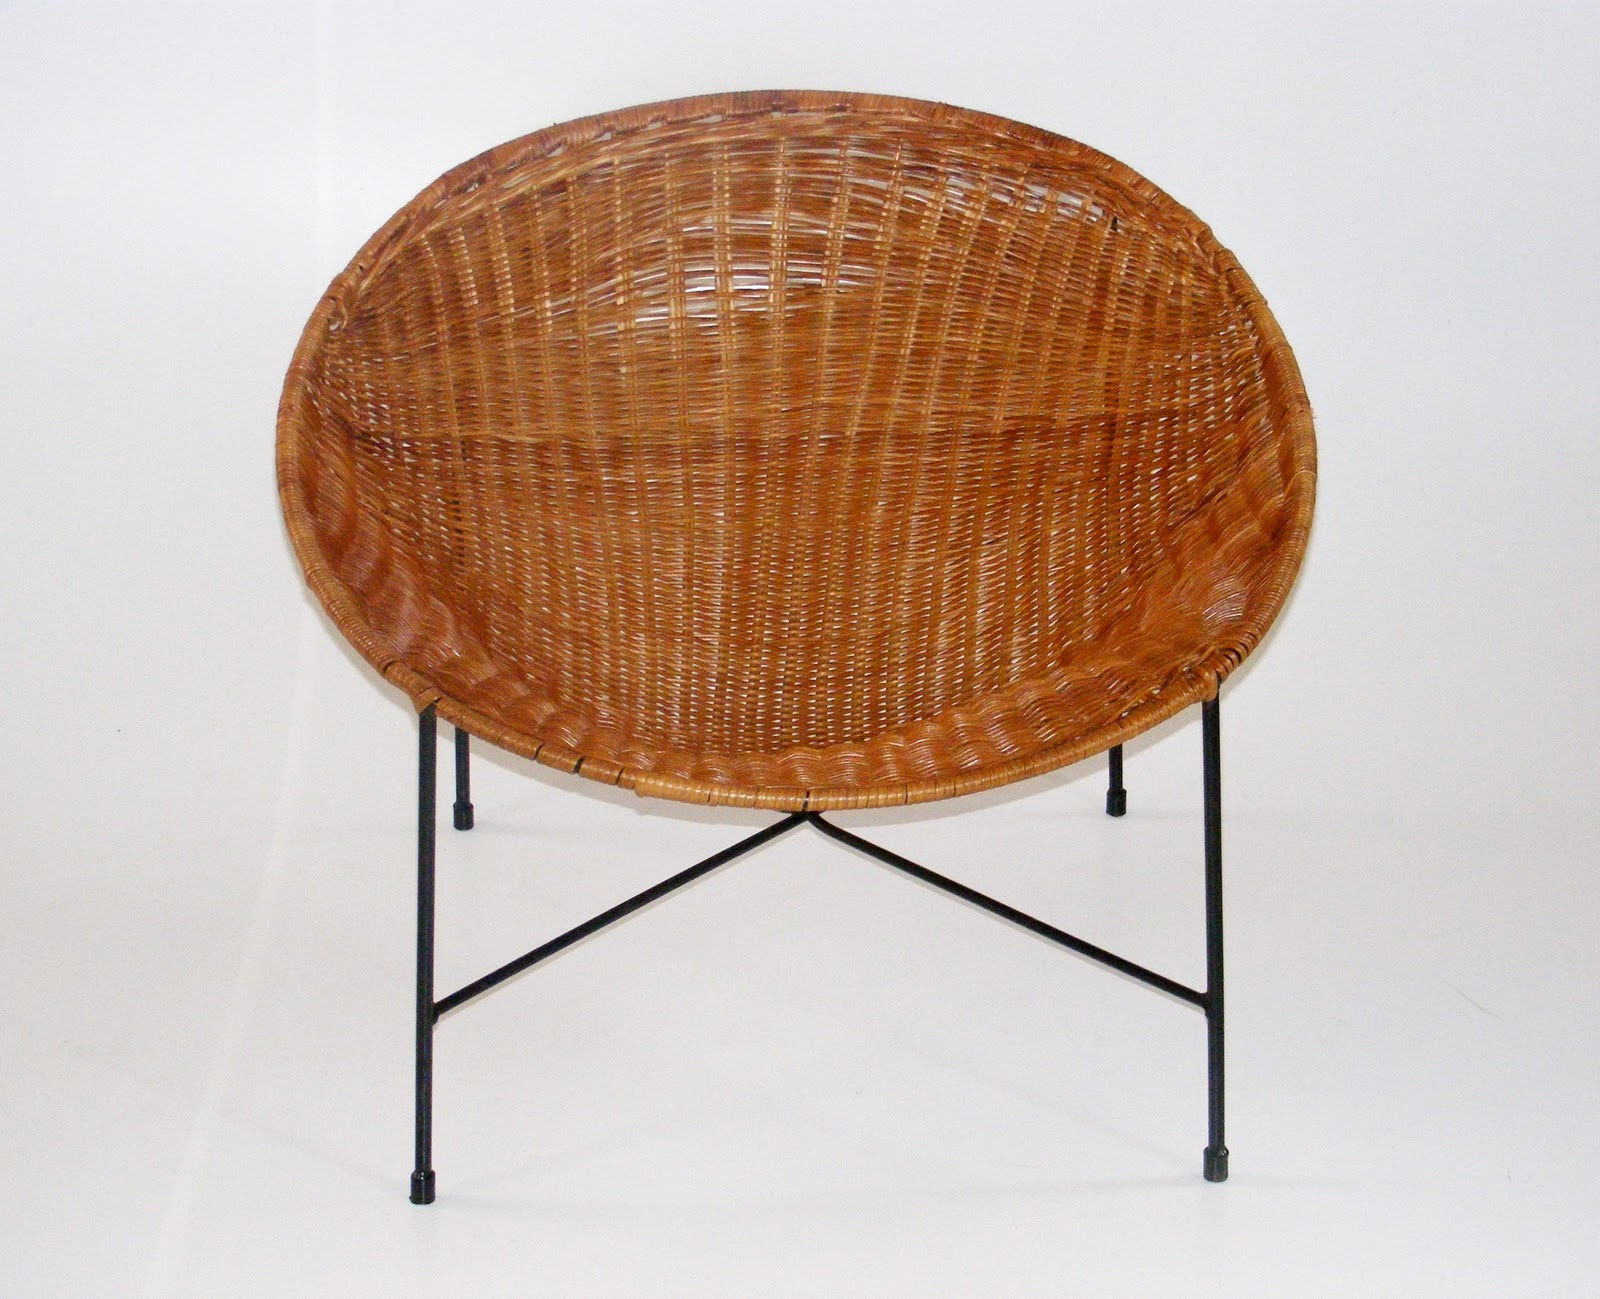 wicker tub chair with metal base soooooo comfy